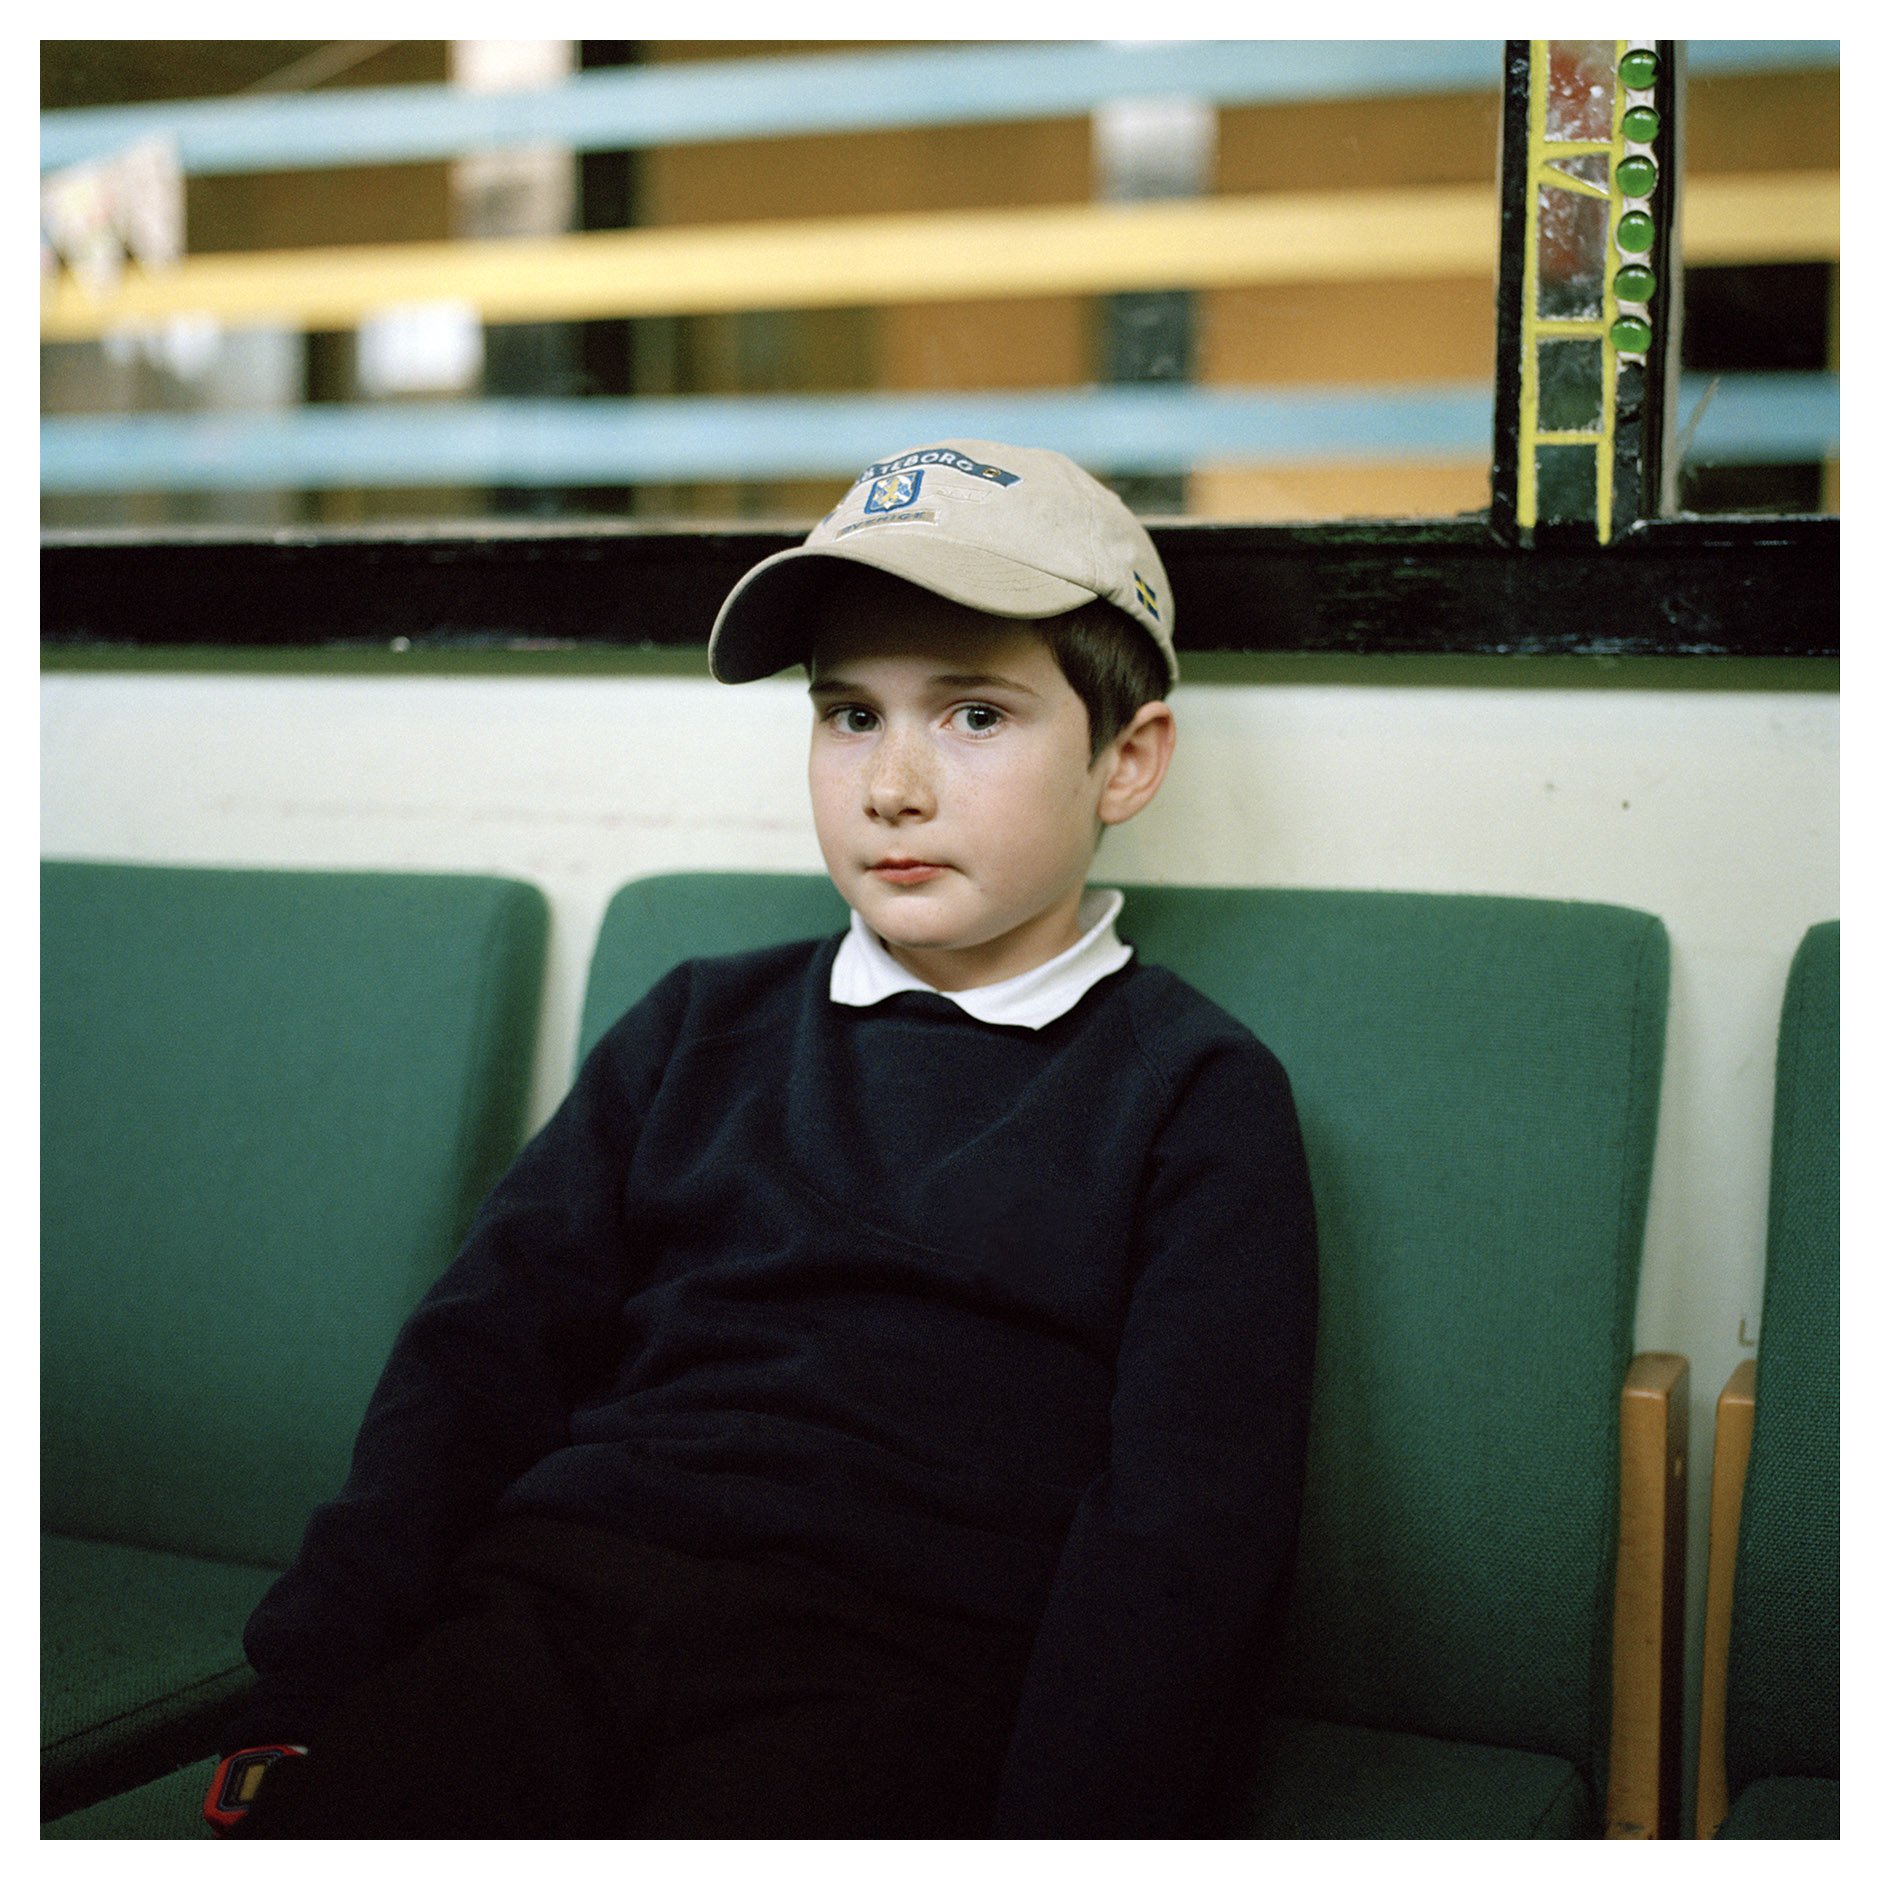 Patrick, Edinburgh, 2015, from the Series Be, Still © Mairead Keating all rights reserved.